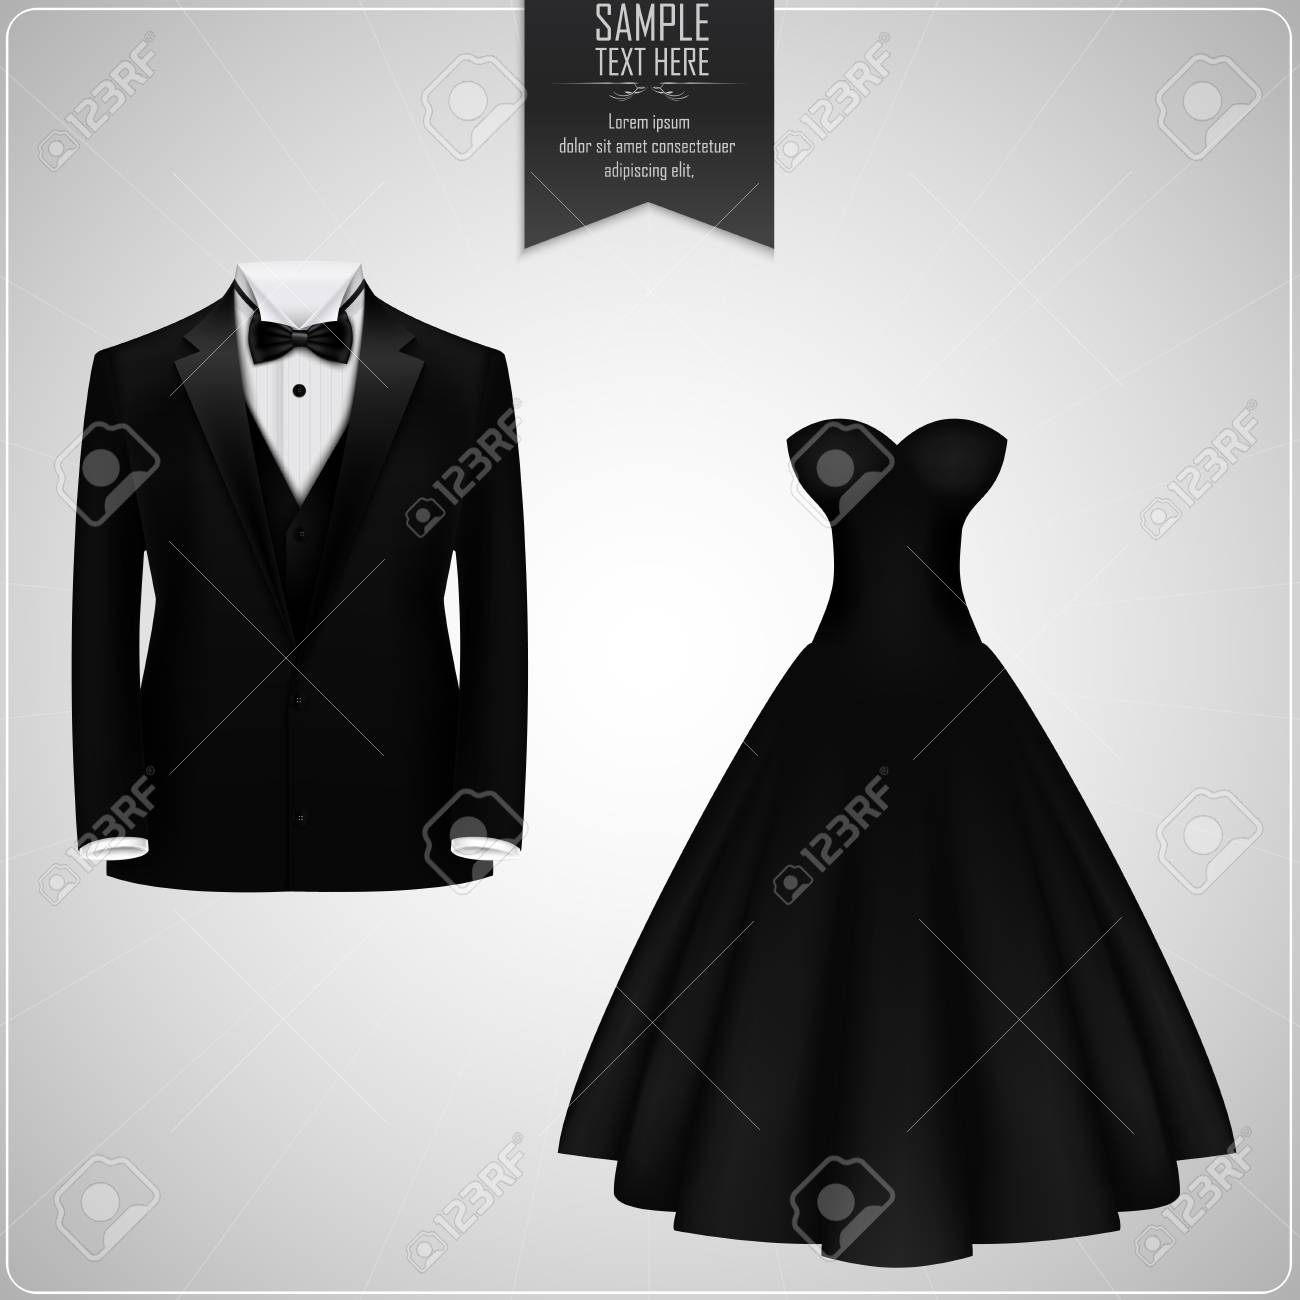 Black Tuxedo And Black Bridal Gown Royalty Free Cliparts, Vectors ...